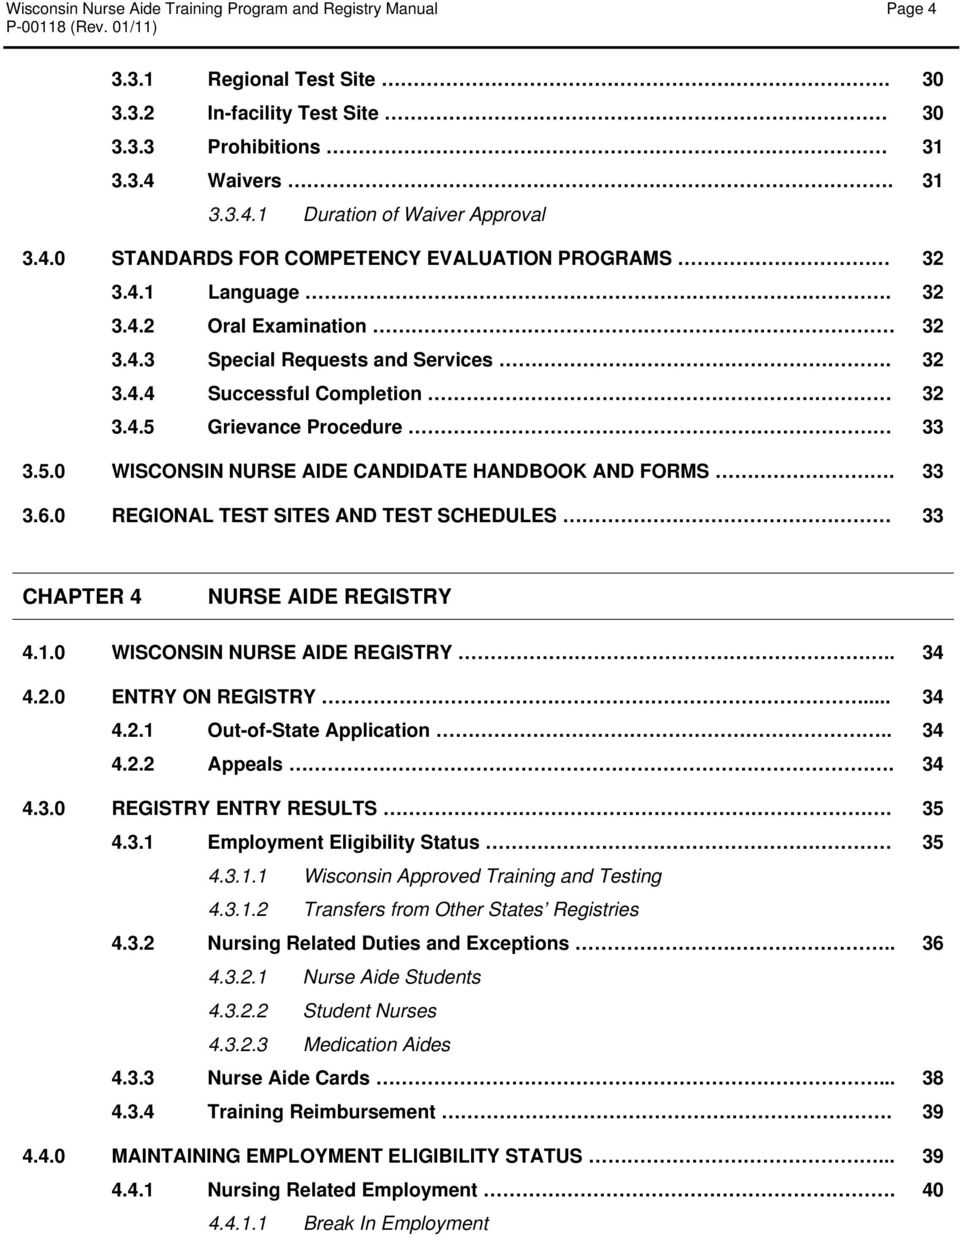 5.0 WISCONSIN NURSE AIDE CANDIDATE HANDBOOK AND FORMS. 33 3.6.0 REGIONAL TEST SITES AND TEST SCHEDULES 33 CHAPTER 4 NURSE AIDE REGISTRY 4.1.0 WISCONSIN NURSE AIDE REGISTRY.. 34 4.2.